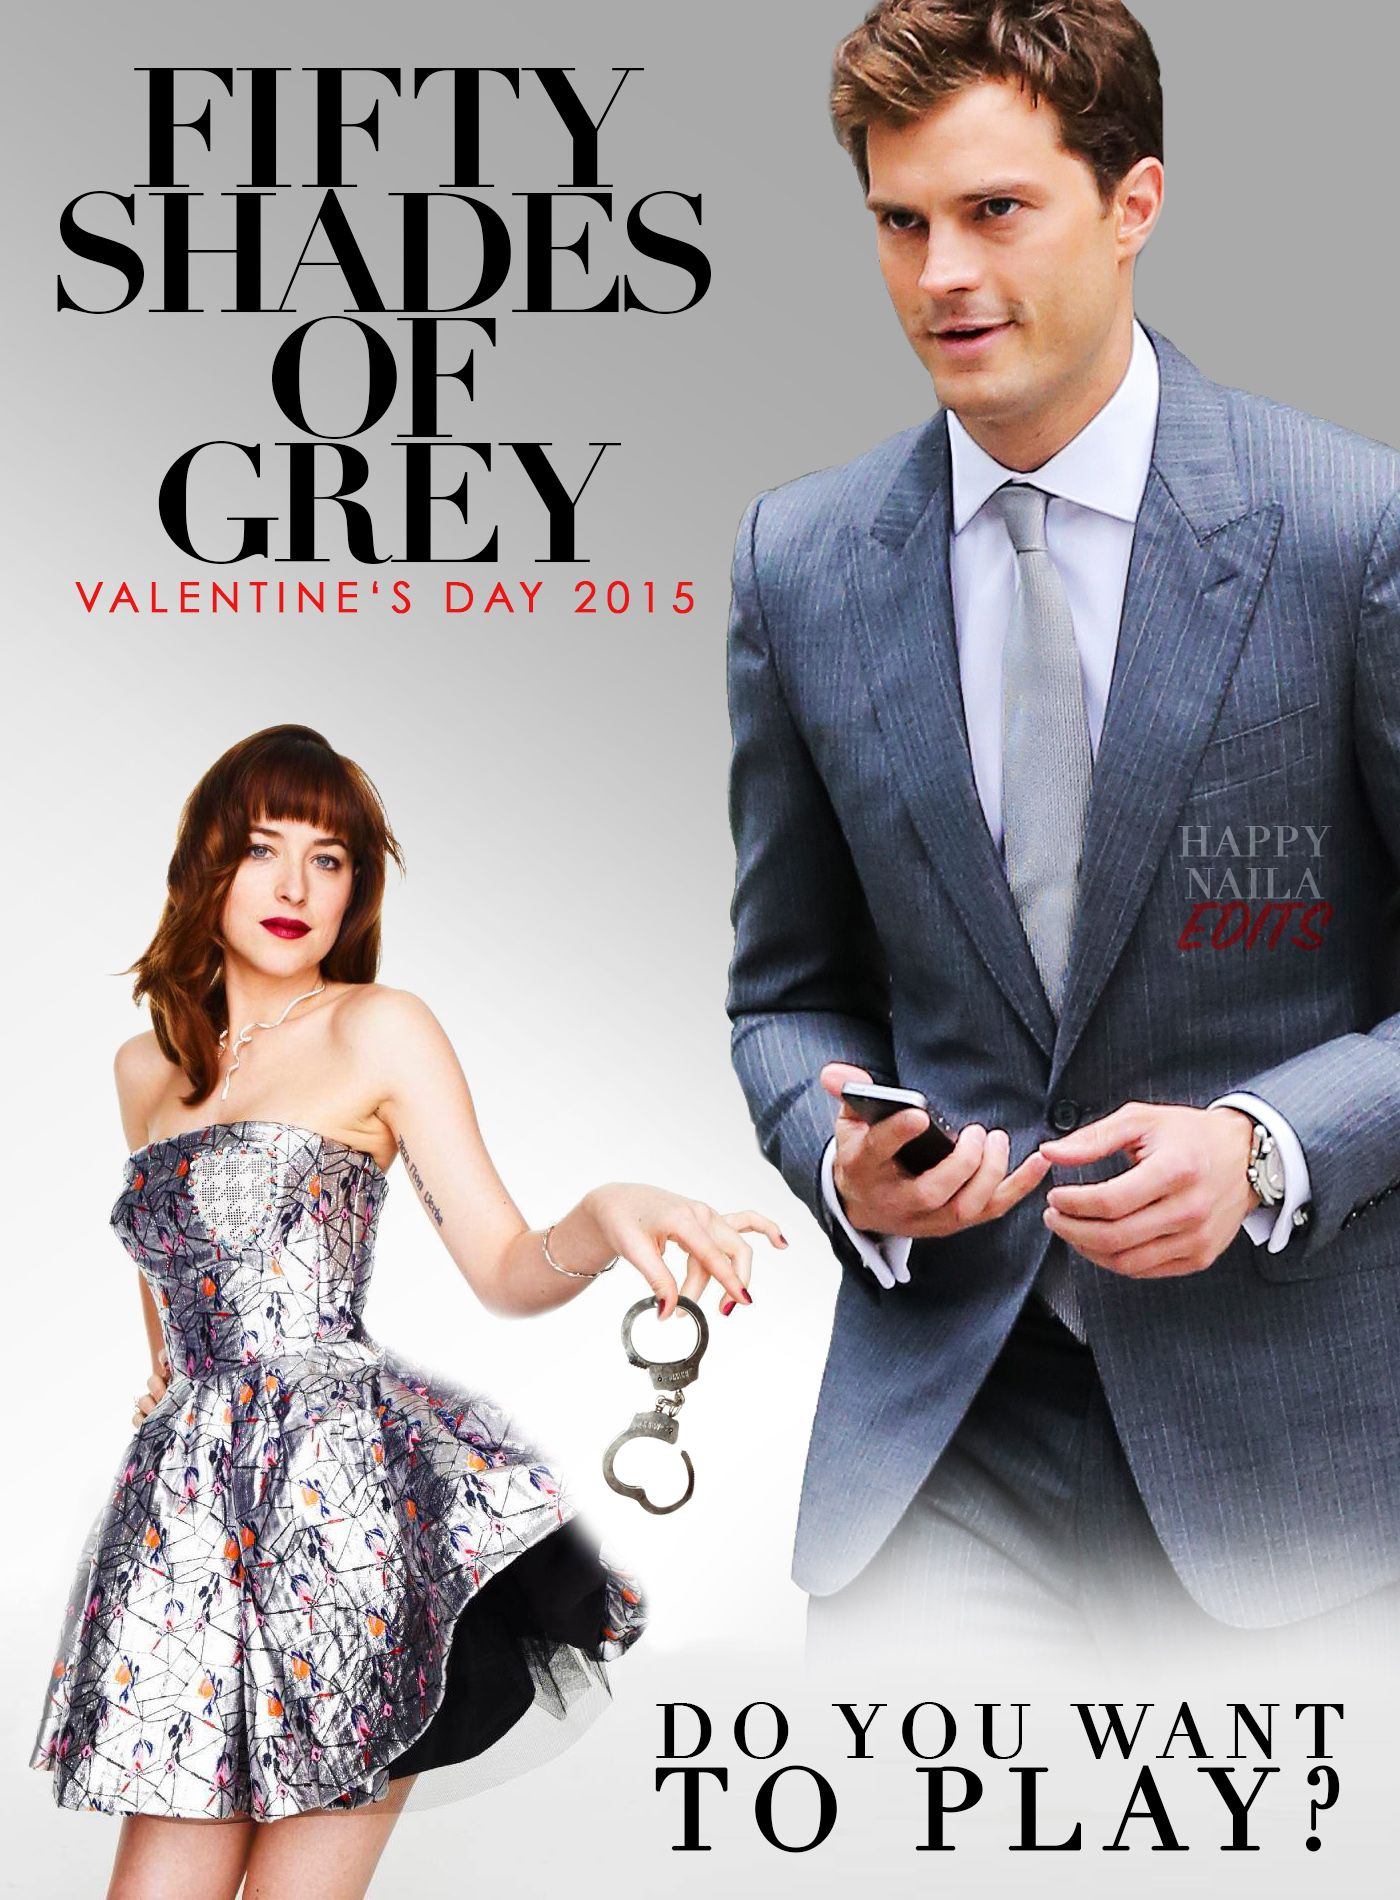 Do you want to play? #FiftyShades   Fifty shades of grey